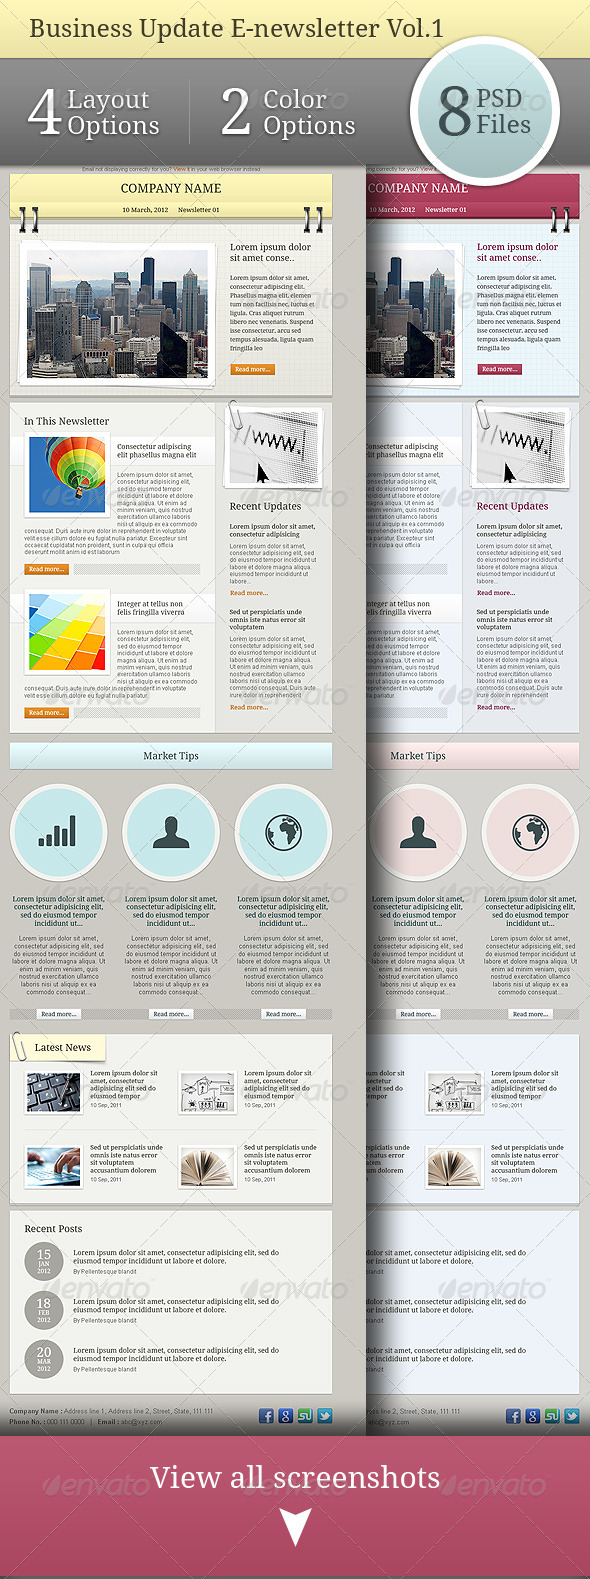 GraphicRiver Business Update E-newsletter Vol.01 2261510